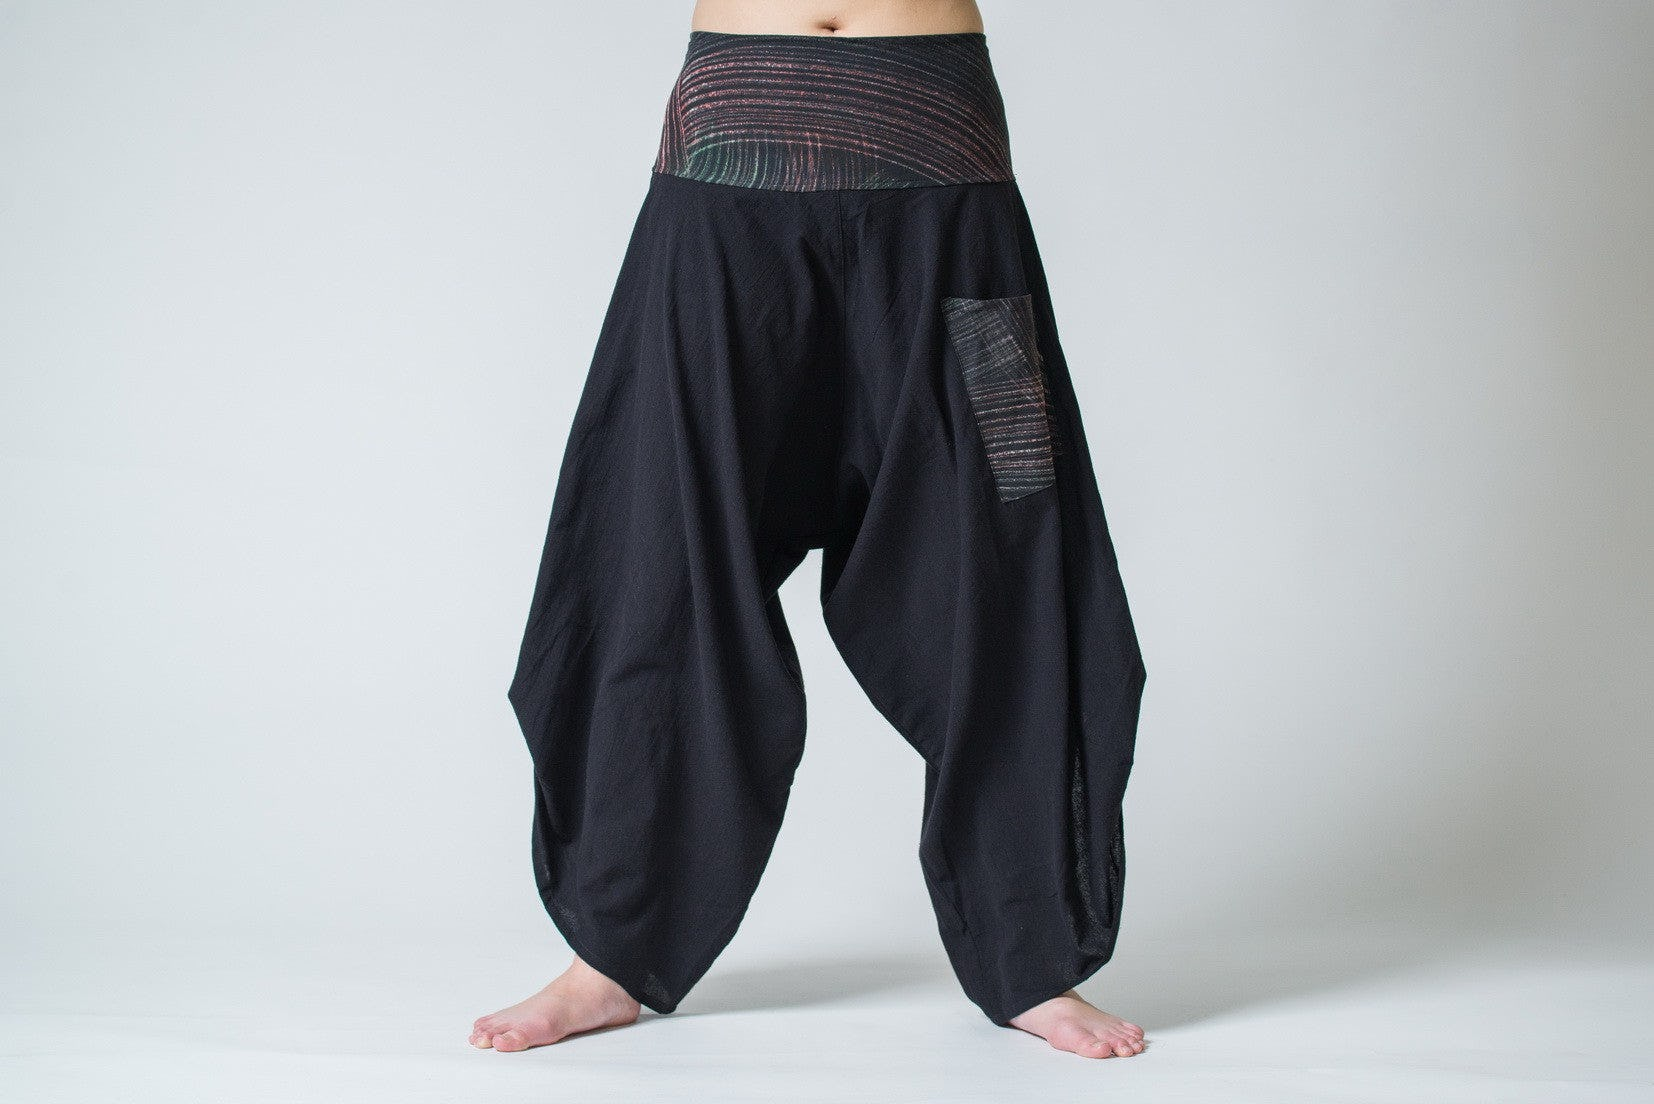 Elegant HAREM PANTS  Where Style Meets Comfort  Harem Pants For Women